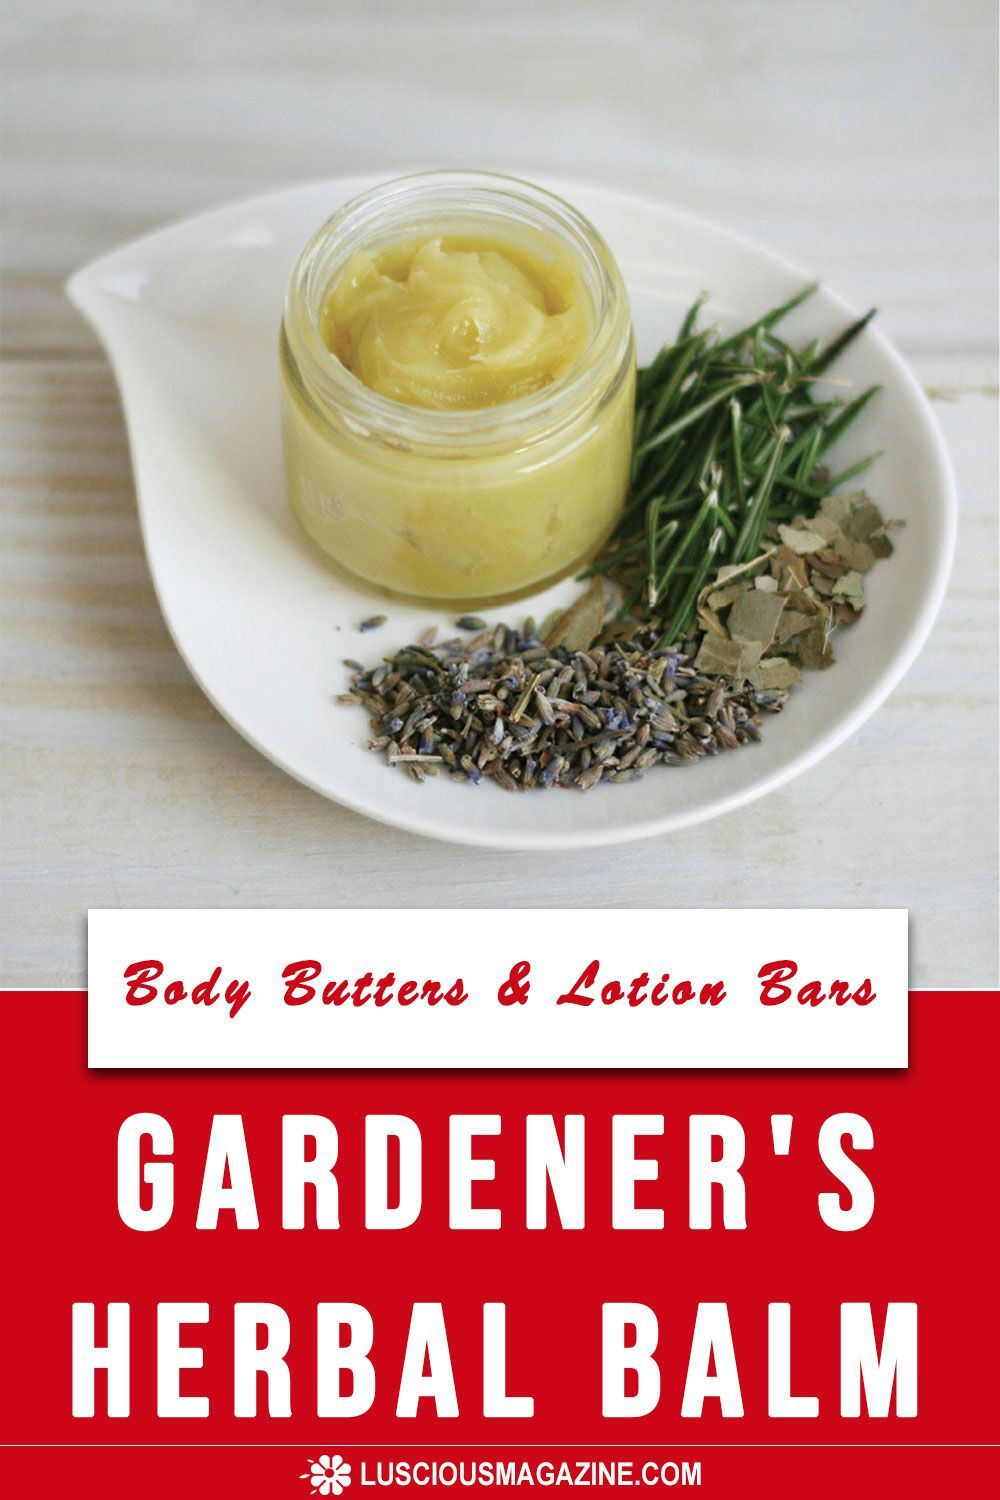 This silky, buttery balm with a sweet herbal scent works to soothe, hydrate, and protect your work-weary hands. The skin on your hands is hard to keep moist because it is thin and has relatively few oil glands... #homeremedies #homemadeproducts #homemade #herbs #flowers #garden #backyard #health #herbal #infusedoils #skincare #beauty #homeskincare #homebeauty #homebodybutters #homelotionbars #homebodybutter #homelotionbar #bodybutters #lotionbars #bodybutter #lotionbar #homeherbalbalm